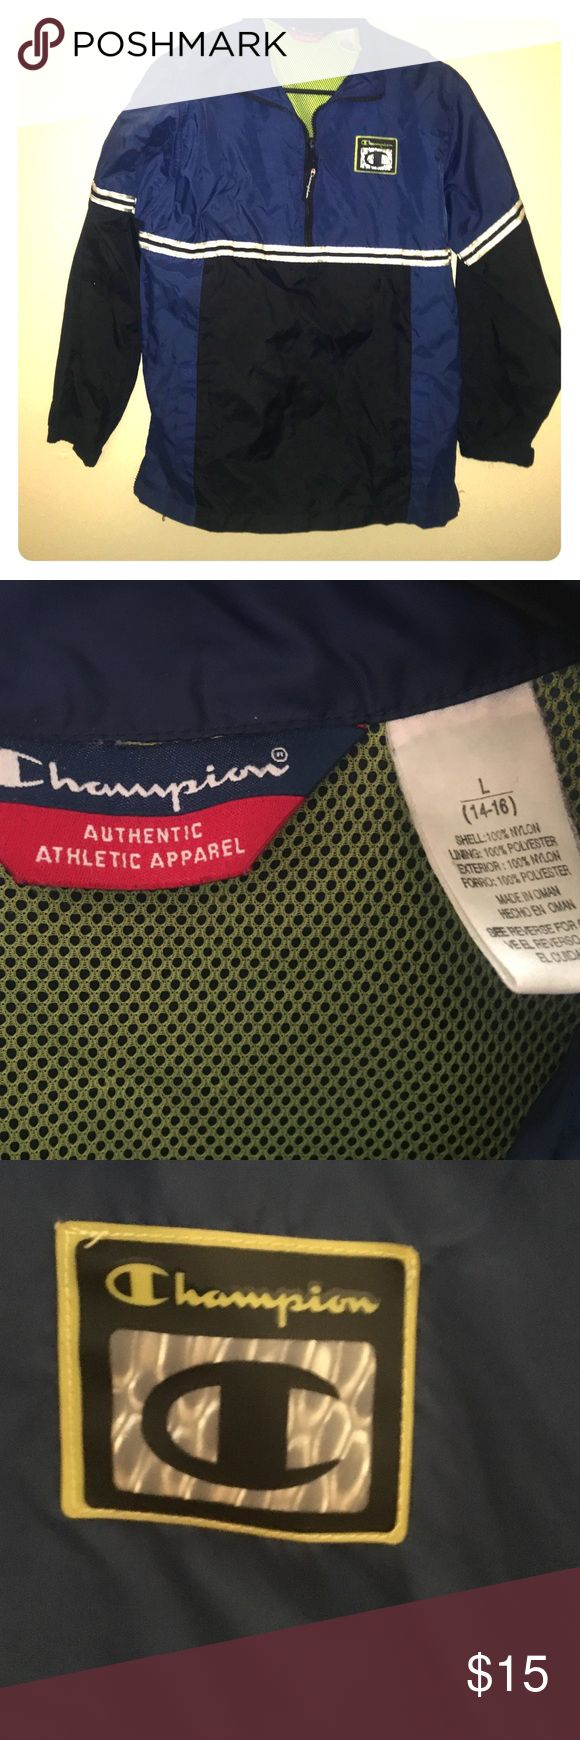 Champion Pullover Windbreaker Authentic Vintage Champion Champion Jackets & Coats